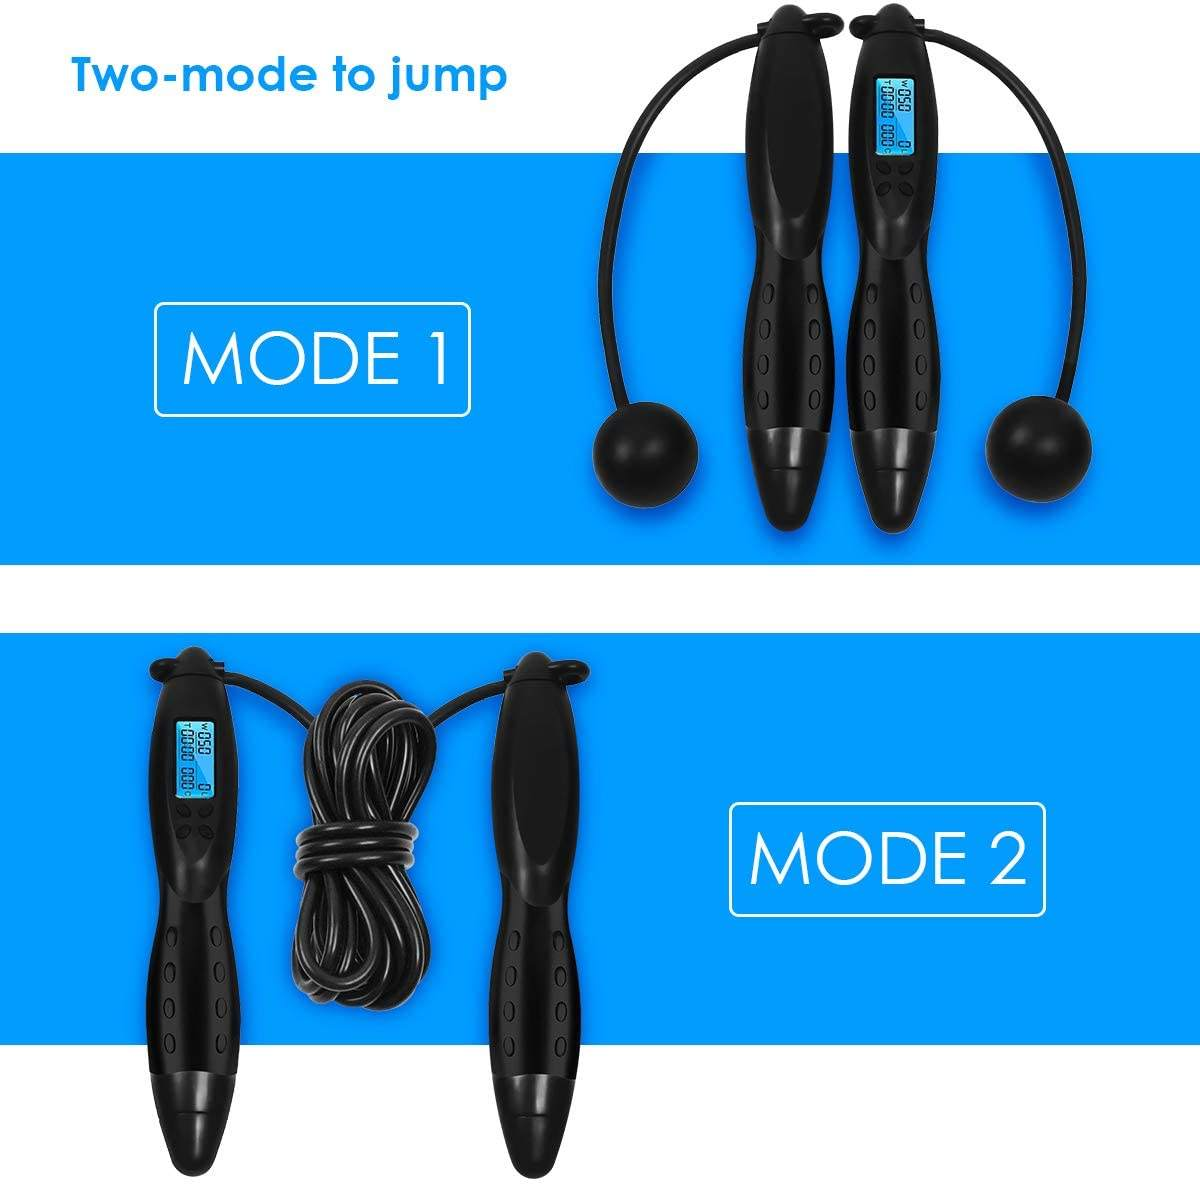 Hot Sale Unisex 1 Pair Gym Fitness Cordless Skipping Rope Burning Calorie Jumping Rope Indoor Wireless Jump Rope Stock